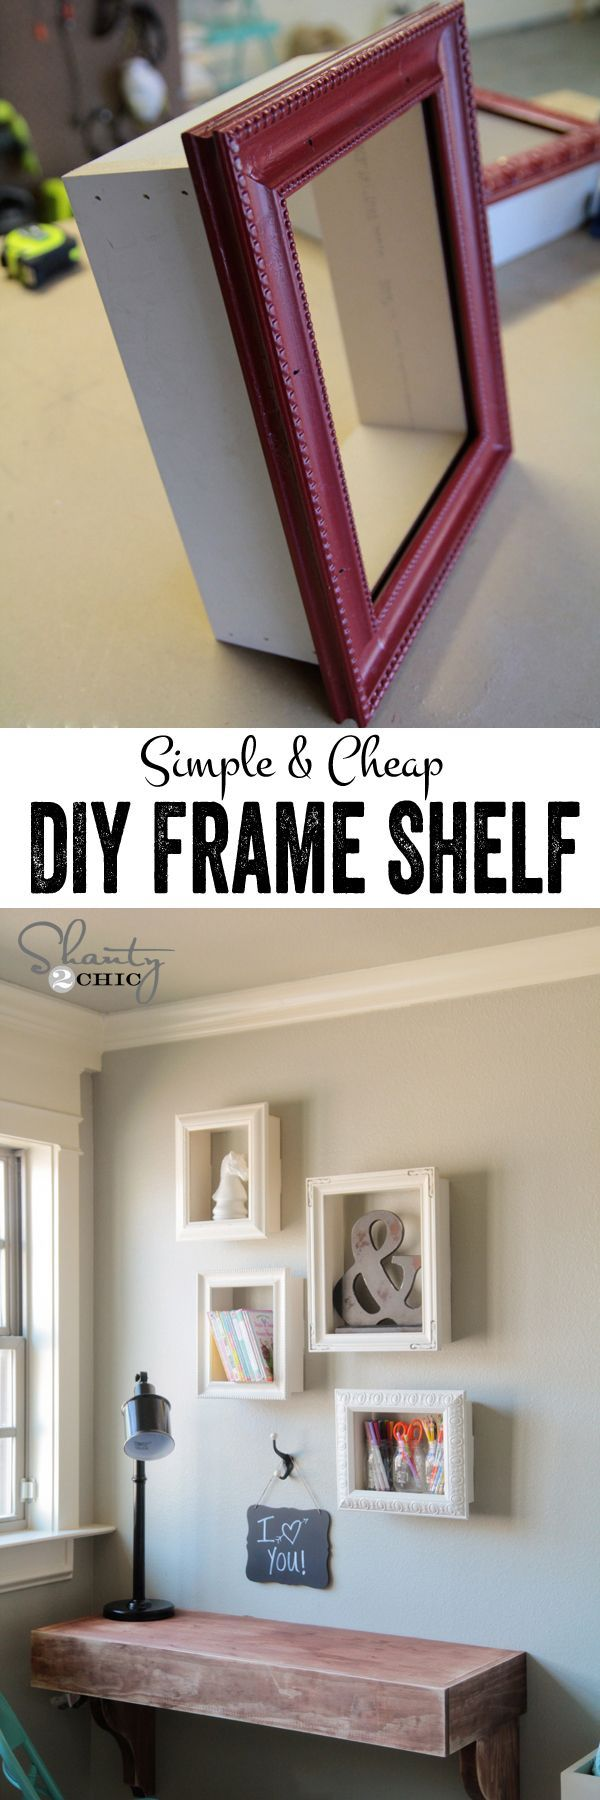 Really cute and simple DIY frame shelves!